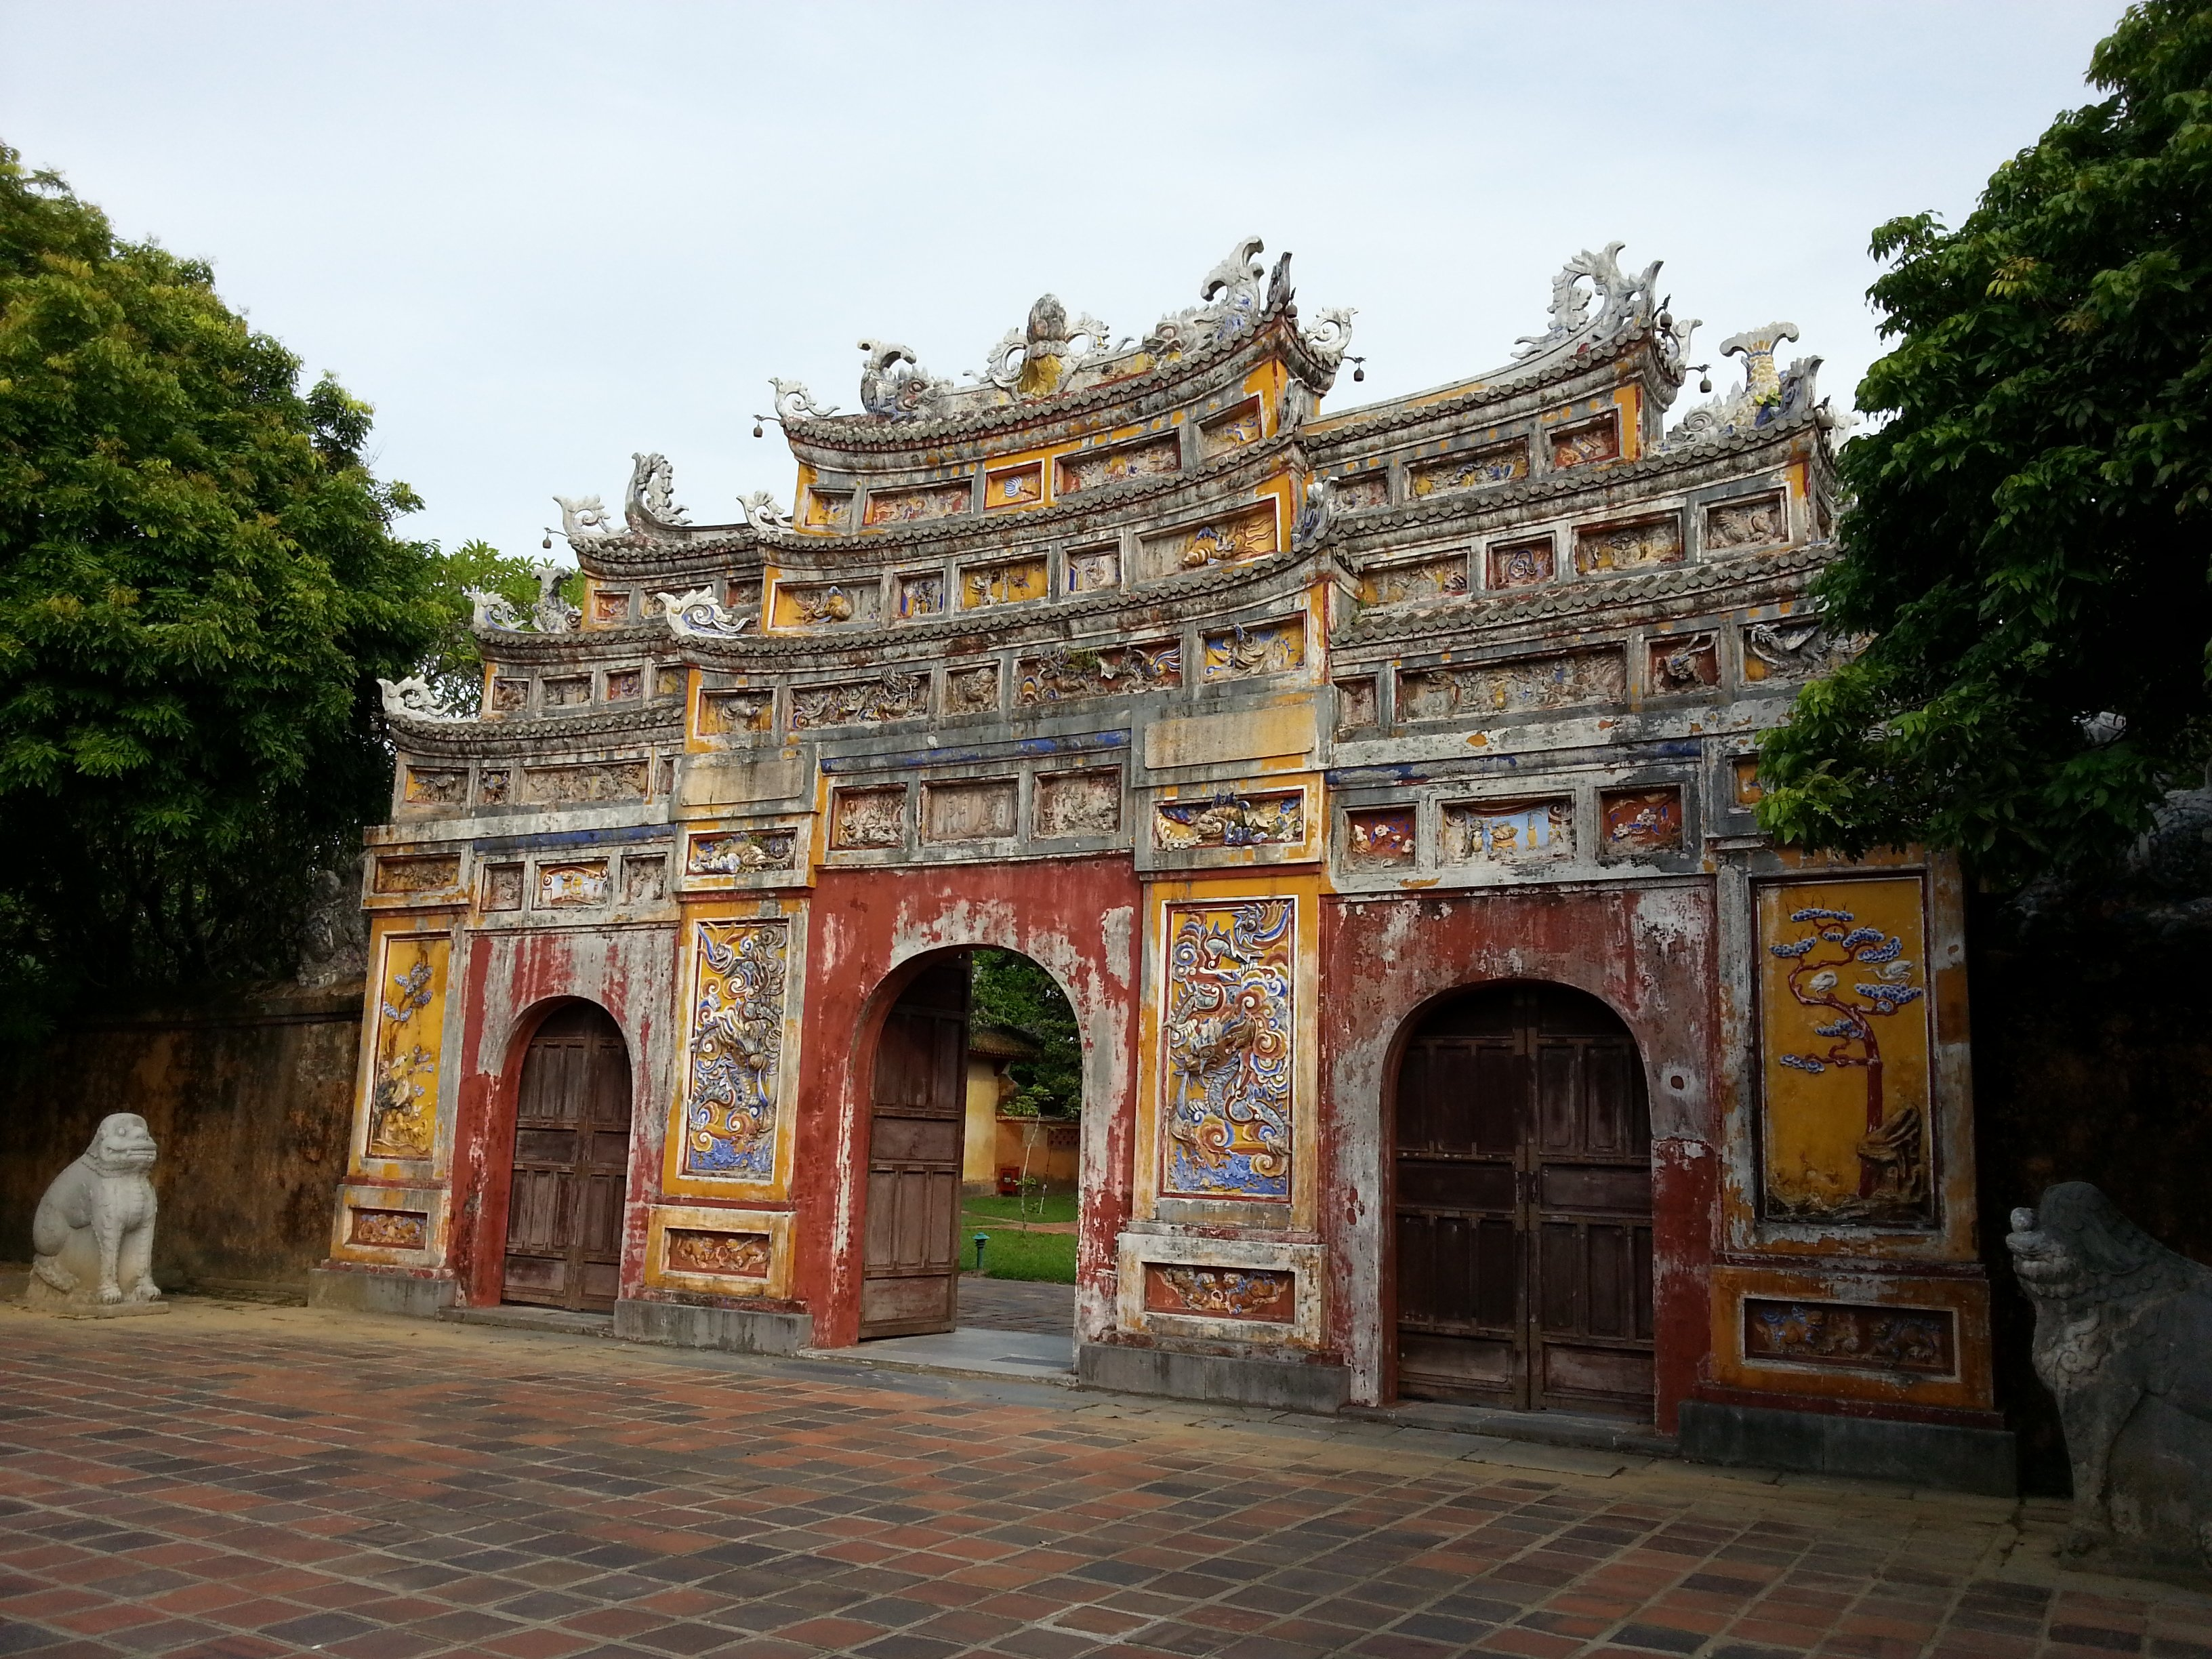 Cua Tho Chi Gate at the Imperial Citadel